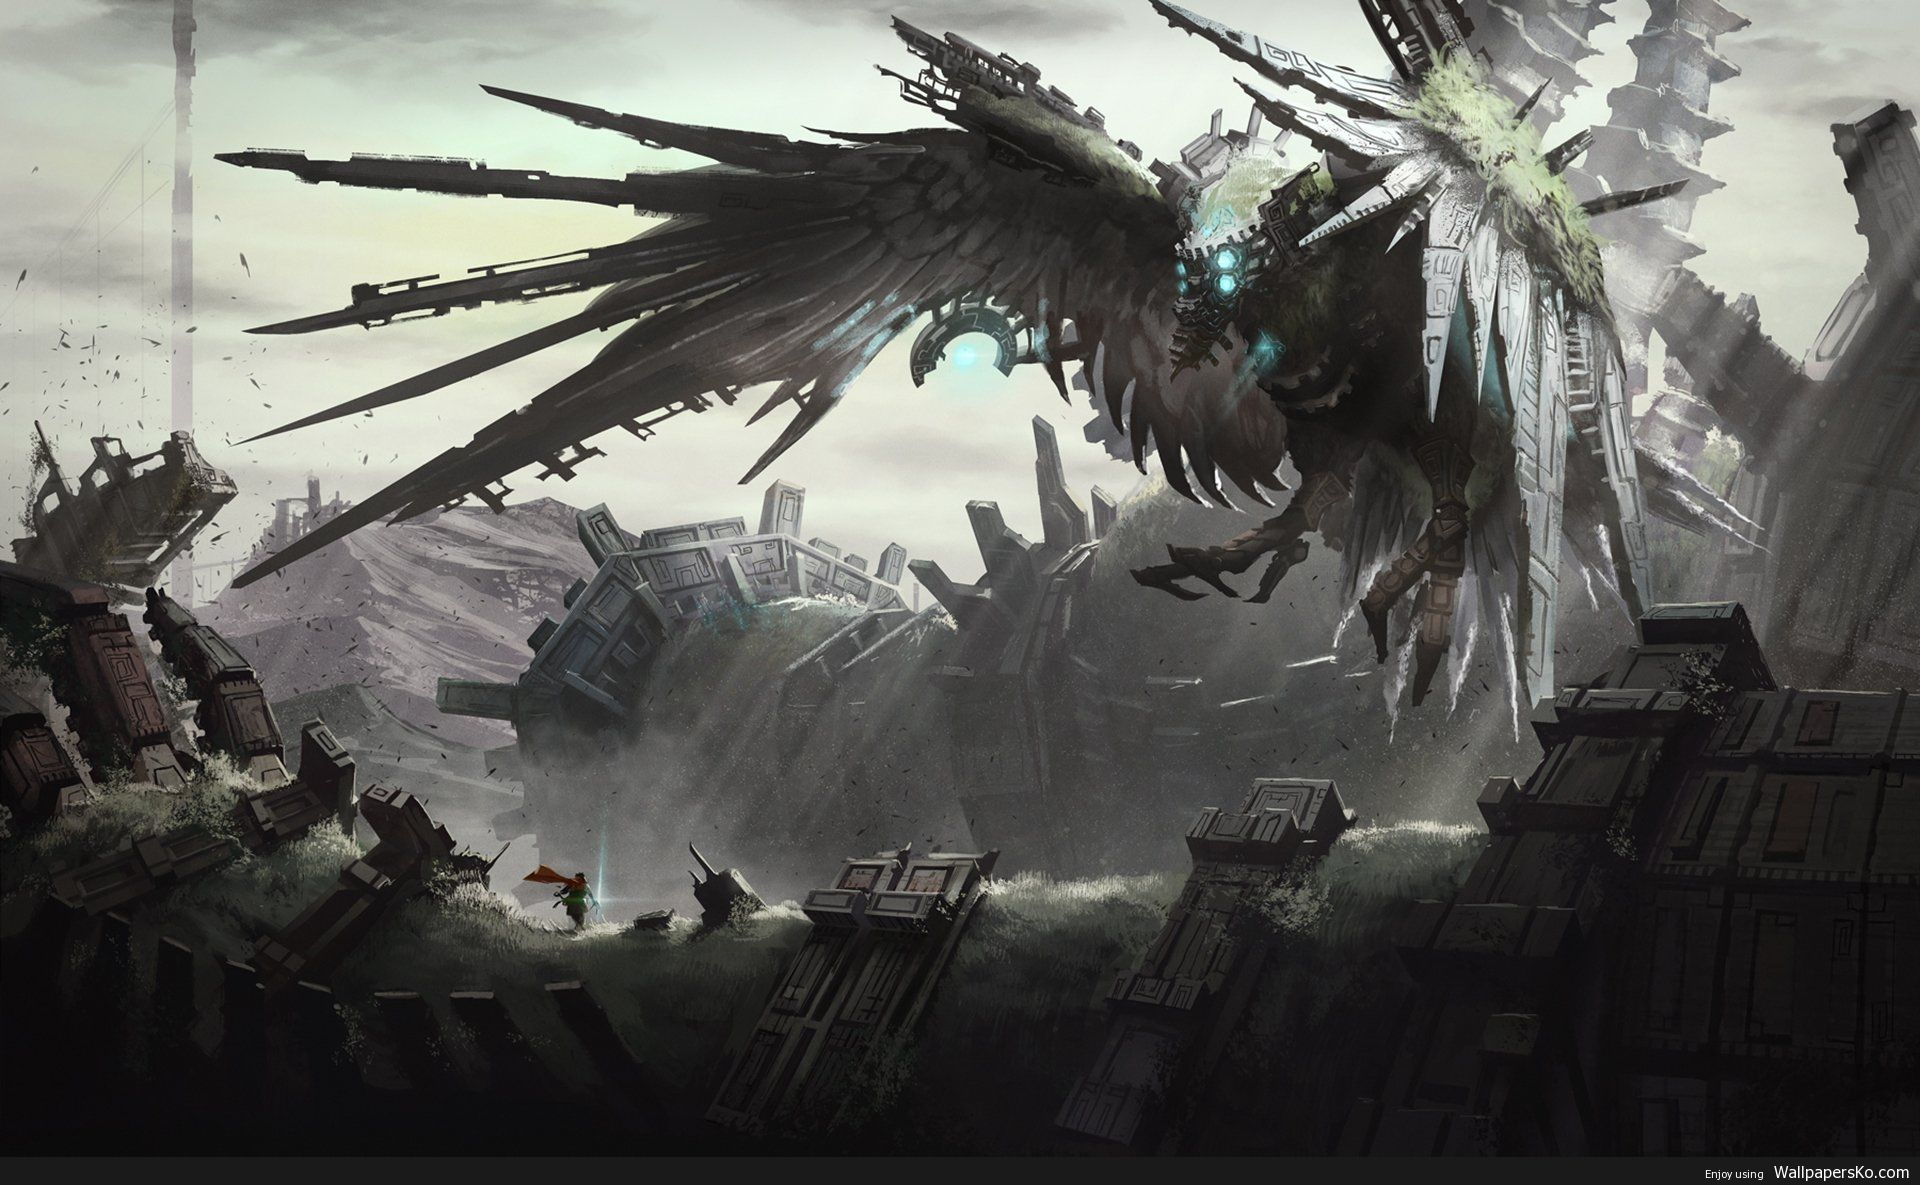 Shadow Of The Colossus Wallpaper 1366x768 Http Wallpapersko Com Shadow Of The Colossus Wallpaper 1366x Shadow Of The Colossus Colossus Fantasy Illustration